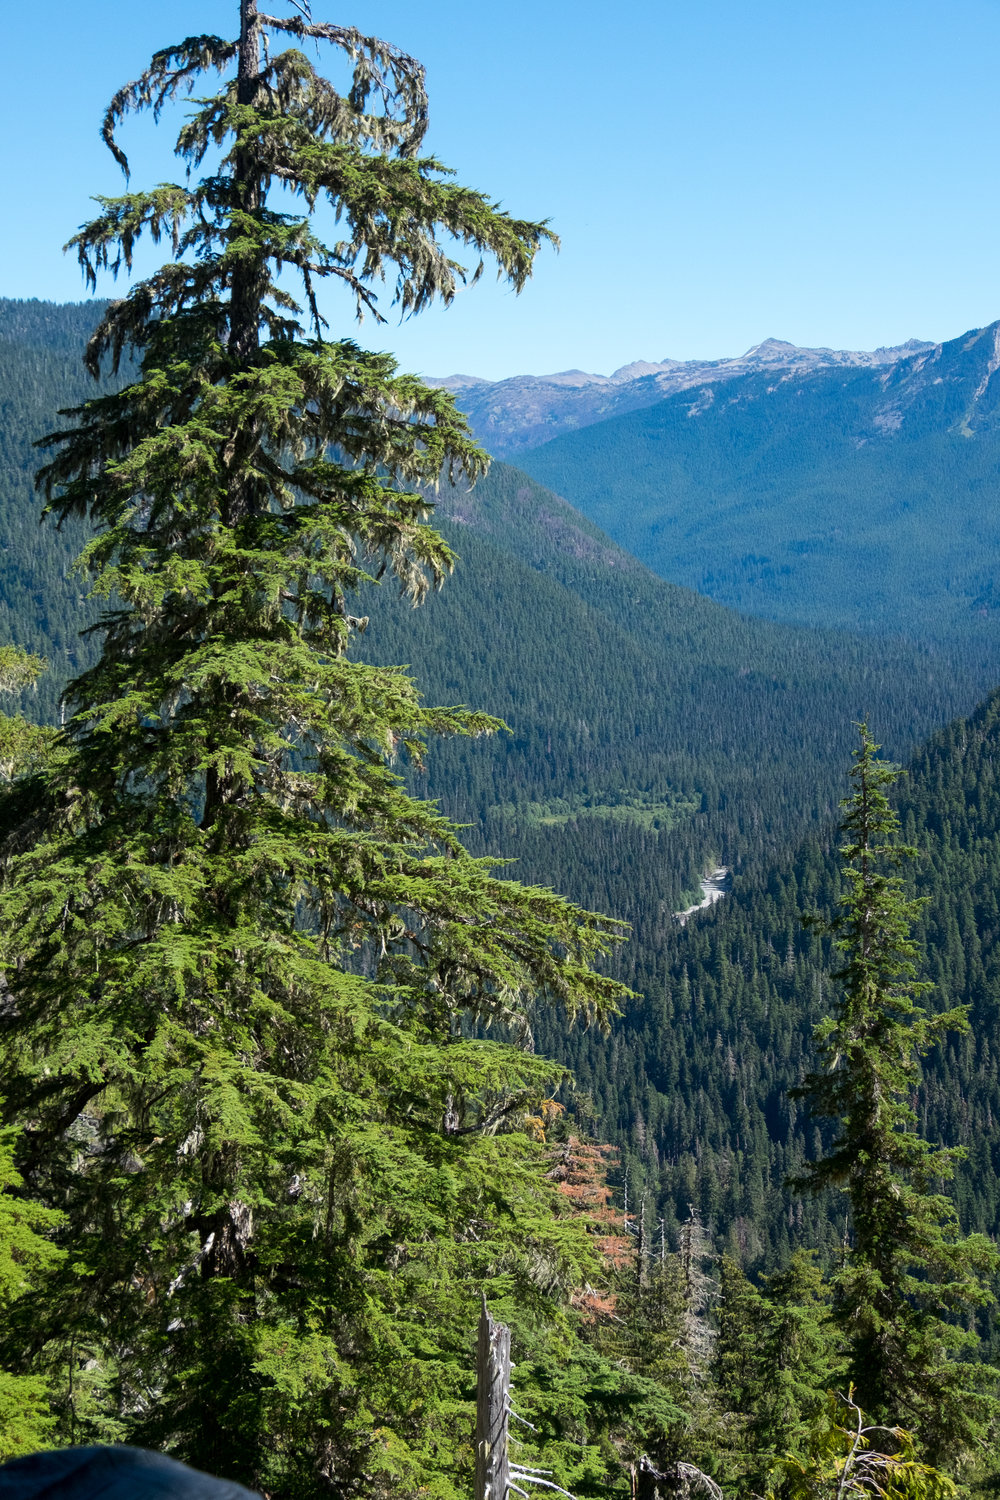 Wilderness - Discover what wilderness is and learn about soundscapes.